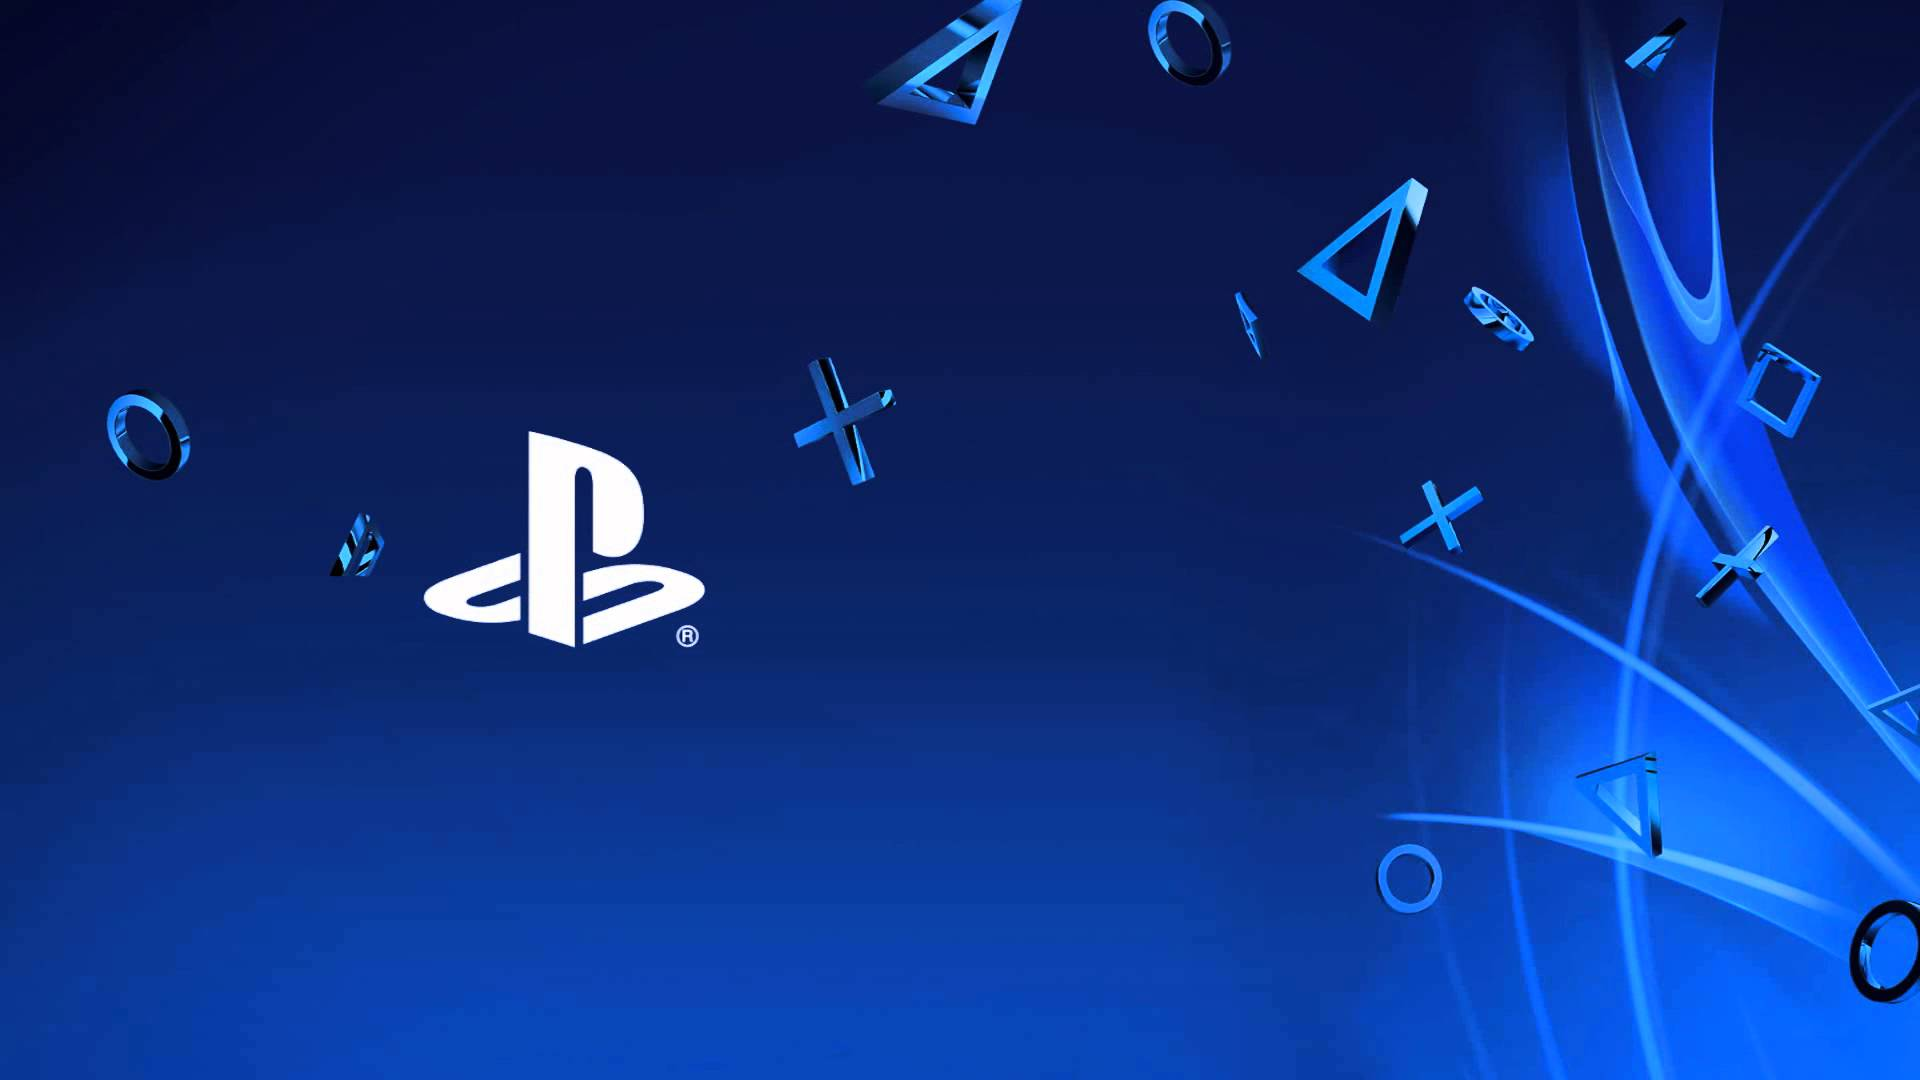 Ps4 Pro 4k Wallpapers Top Free Ps4 Pro 4k Backgrounds Wallpaperaccess